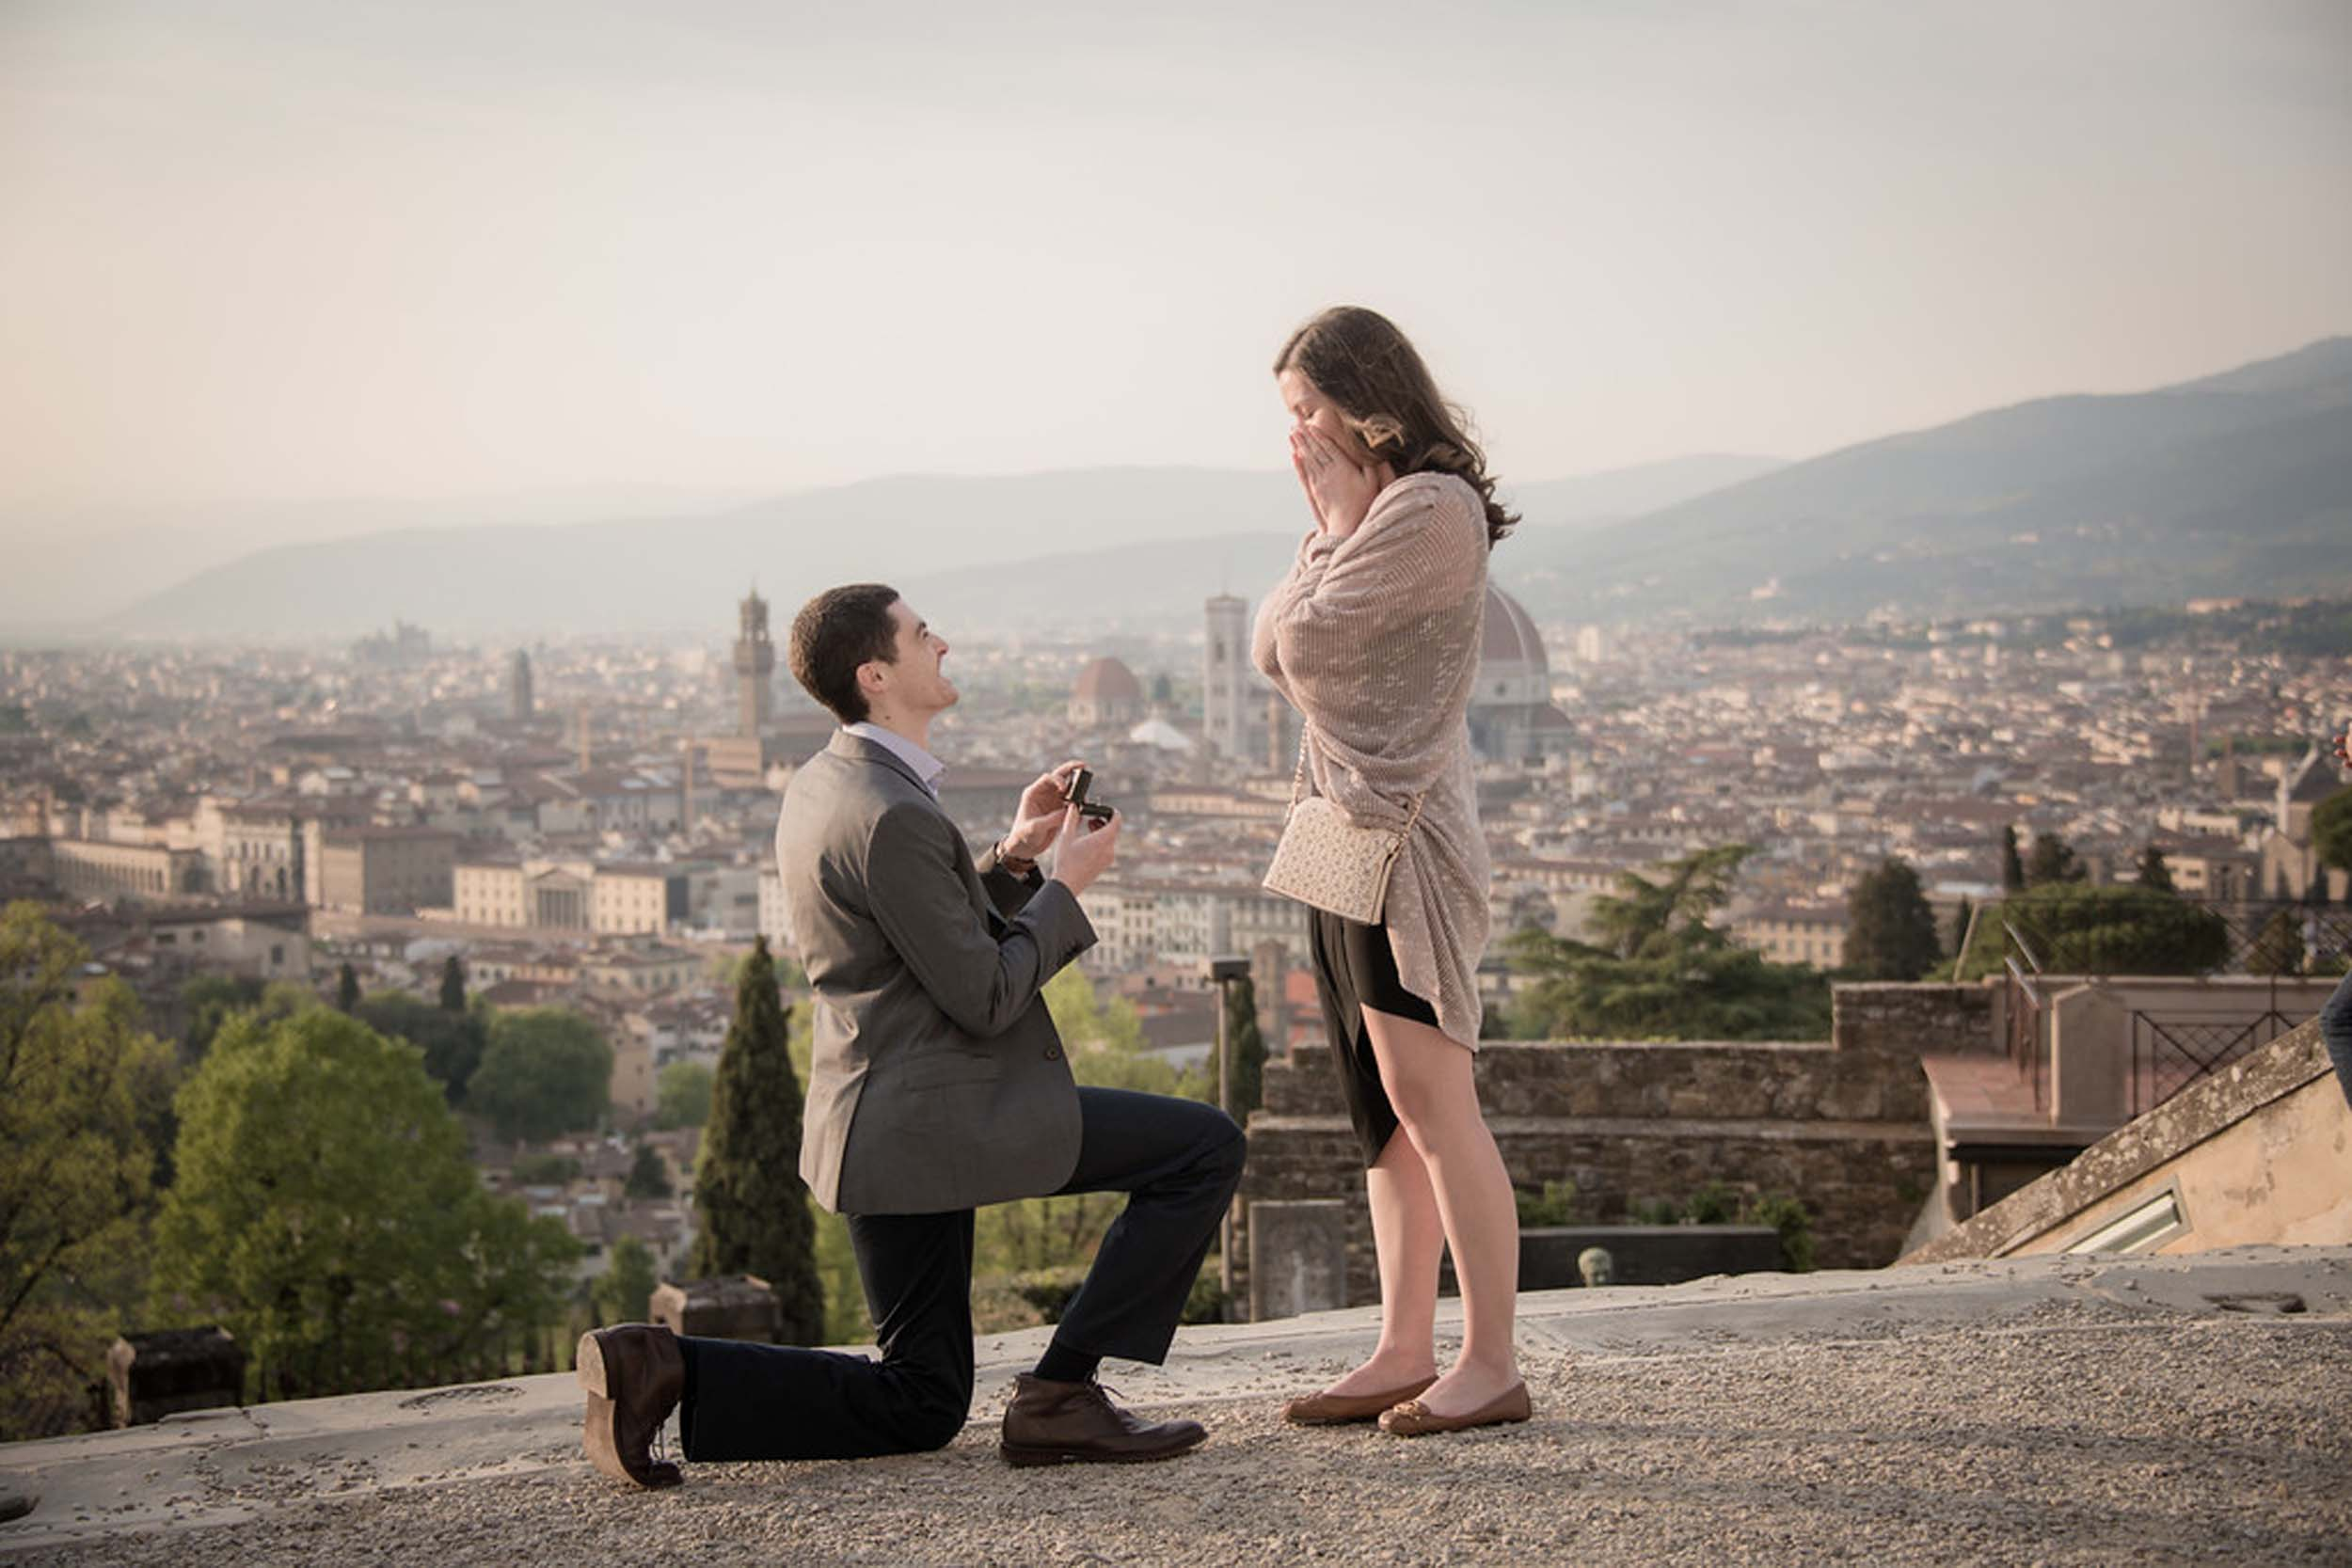 Surprise Flytographer proposal at the Piazzale Michelangelo in Florence, Italy